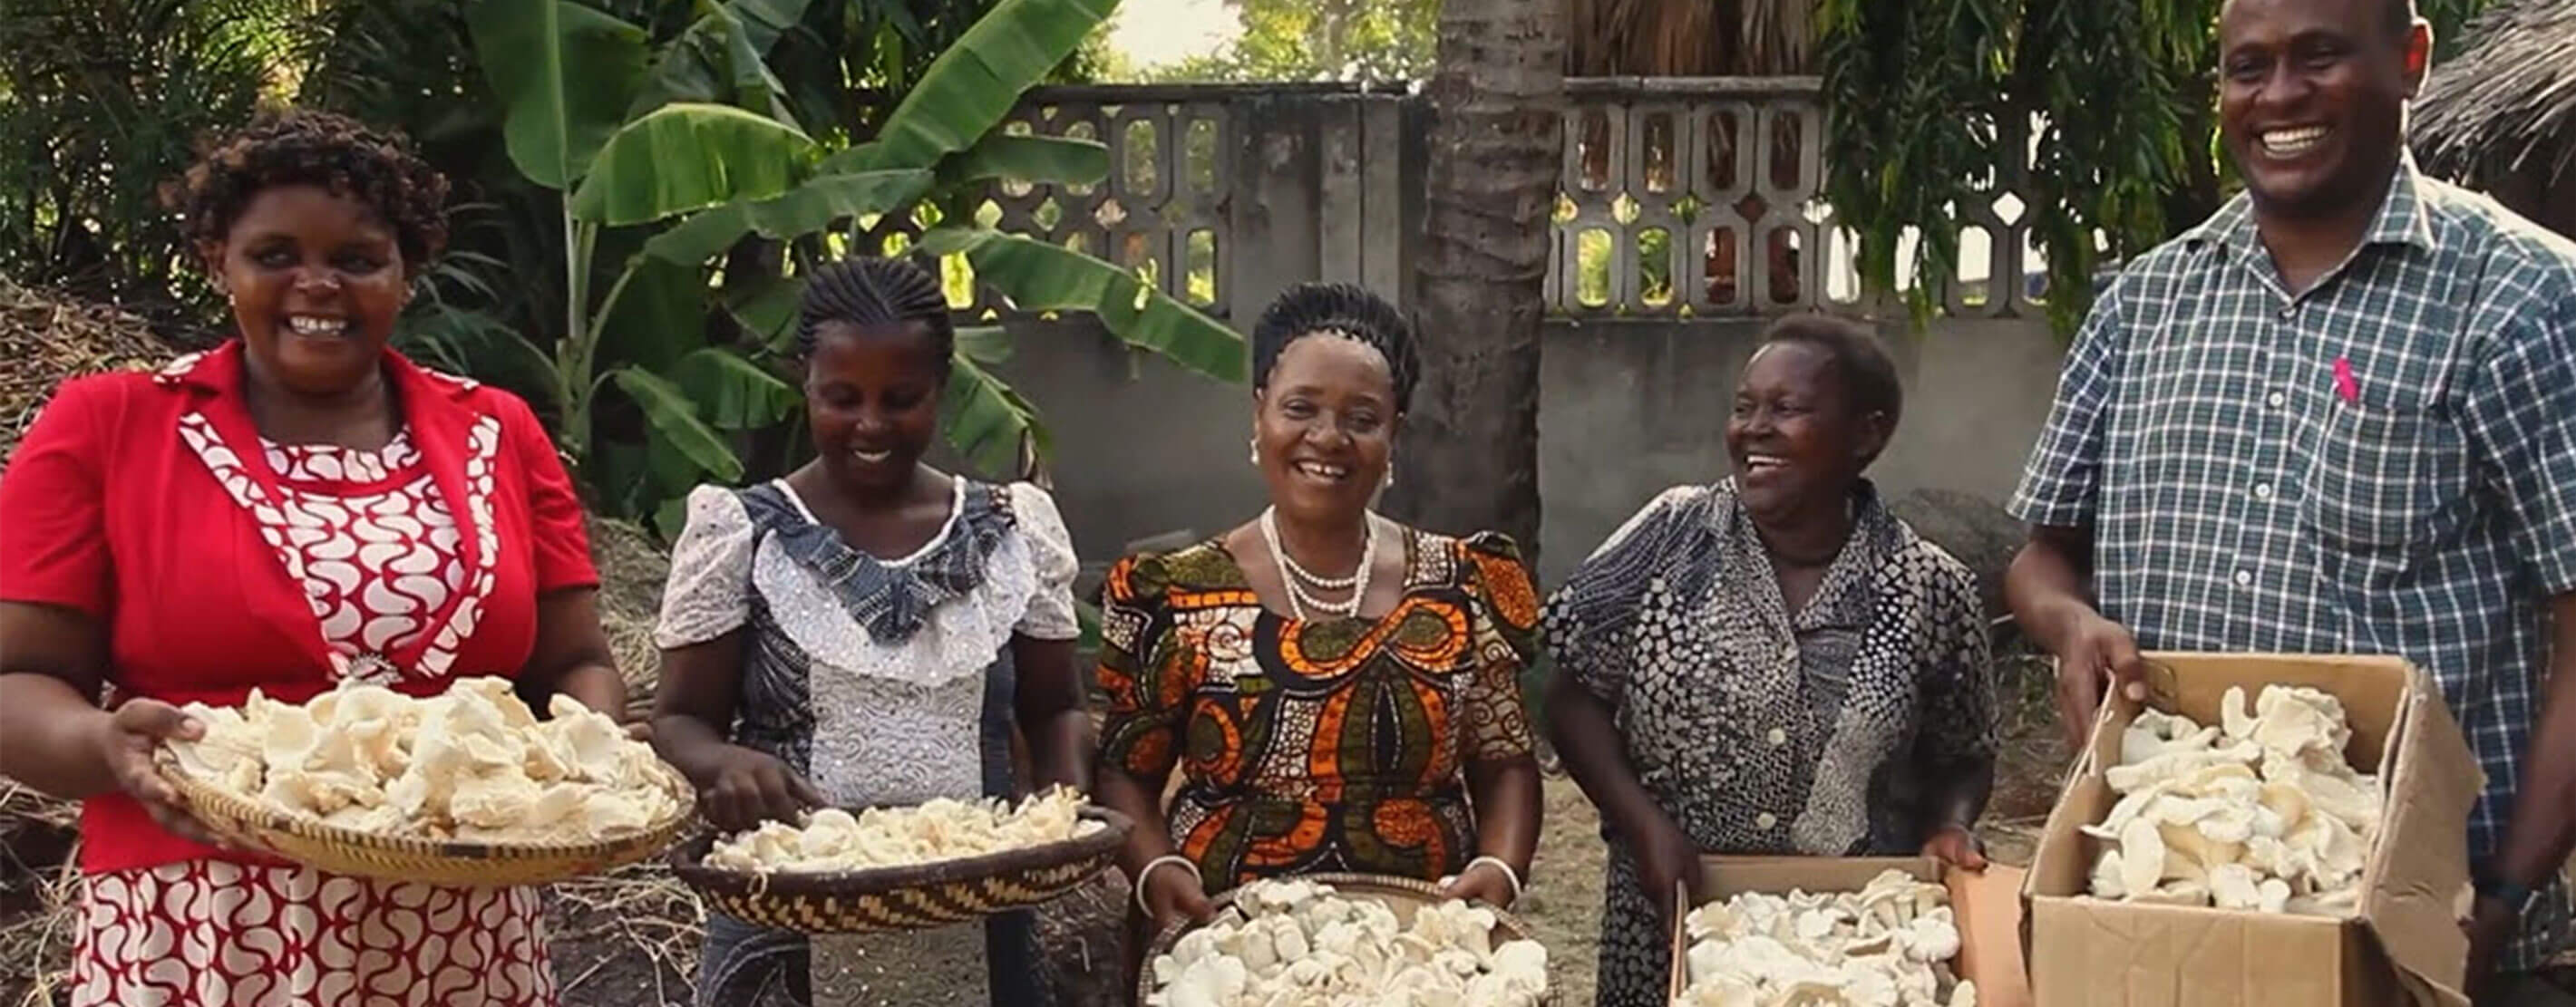 Women In Tanzania With Baskets Of Mushrooms